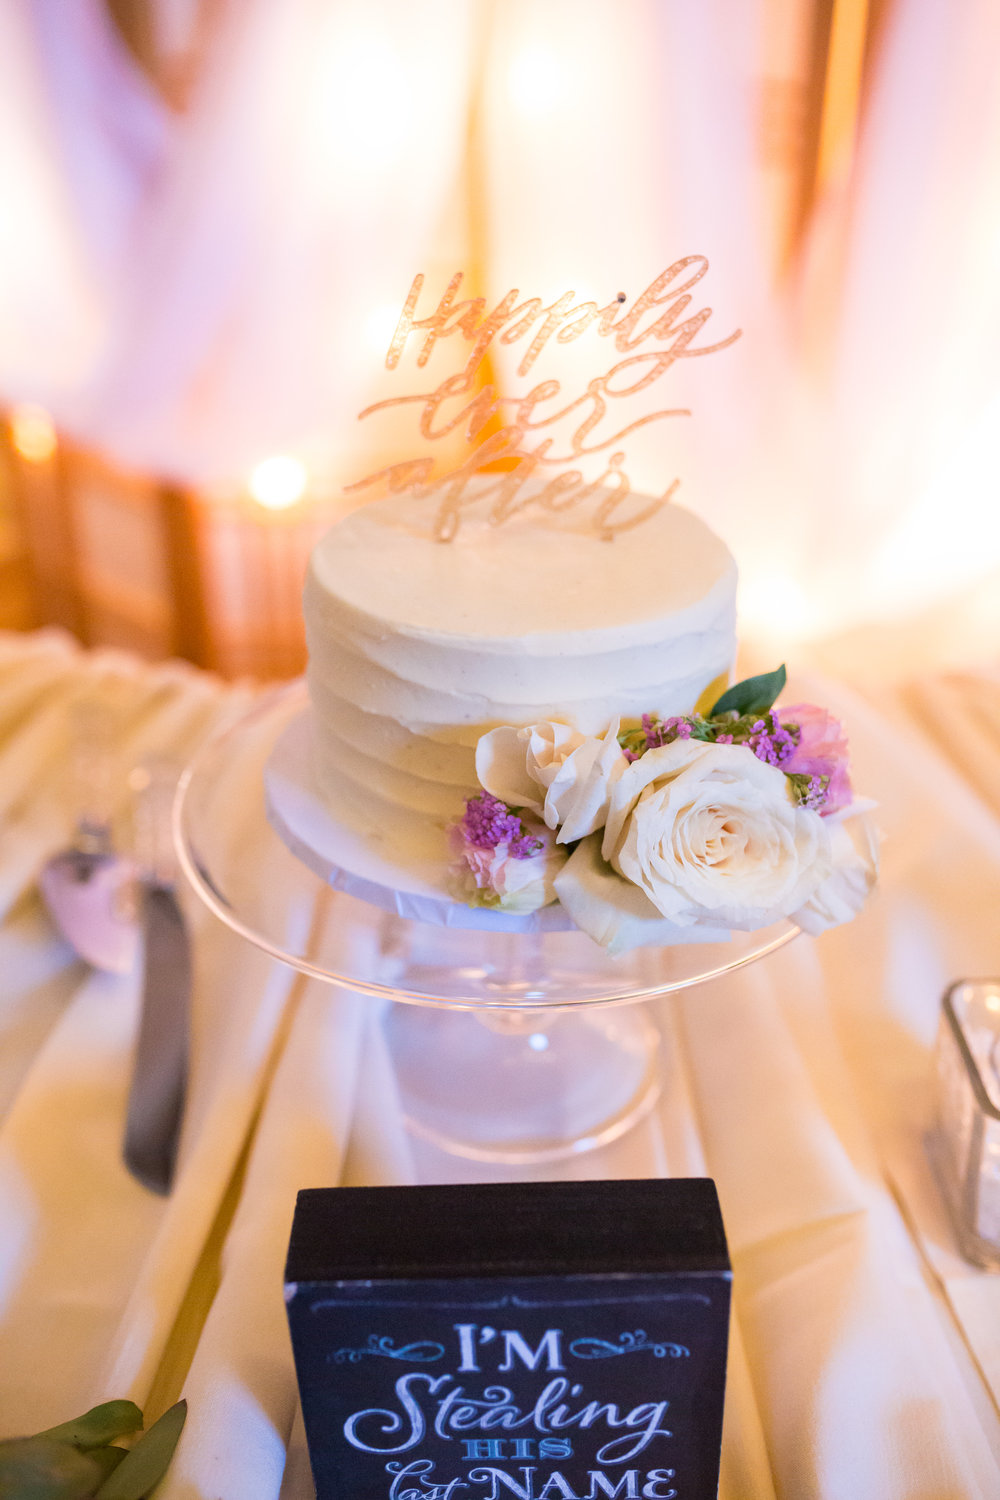 Perfectly Planned Moments Eugene Oregon Wedding Planner Downtown Athletic Club Wedding Cake.jpg